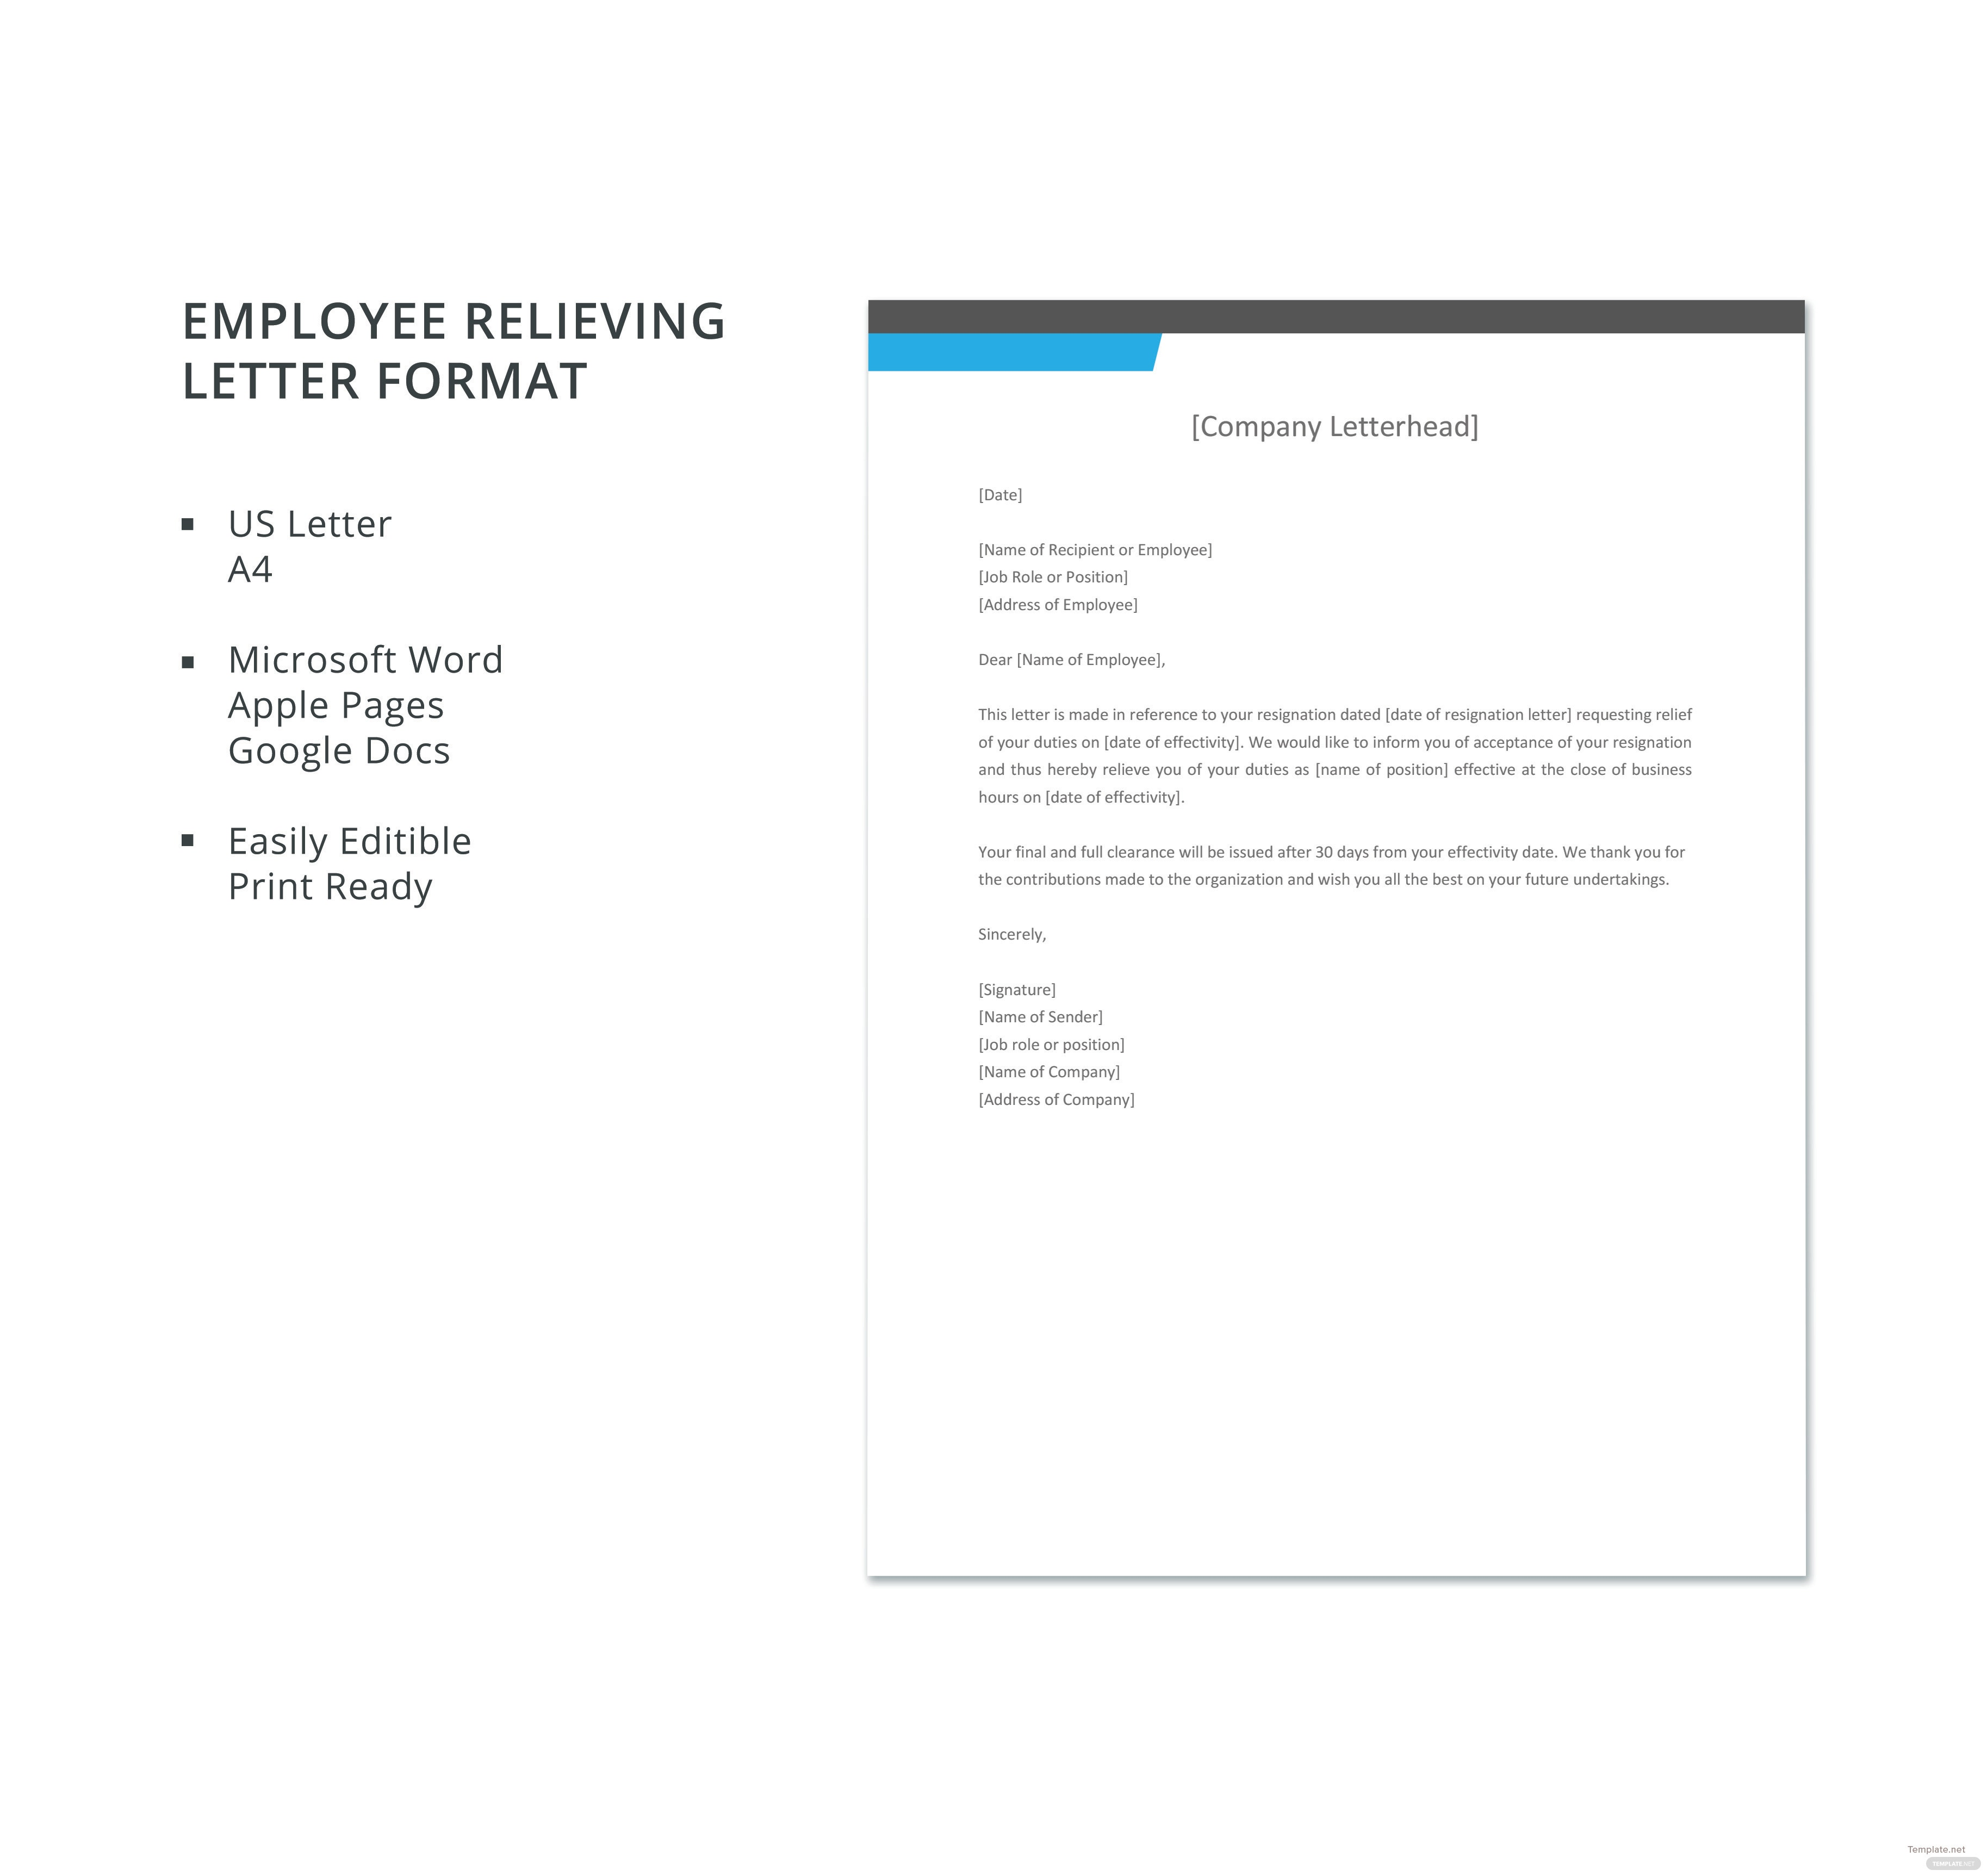 Employee relieving letter format in microsoft word apple pages employee relieving letter format altavistaventures Choice Image